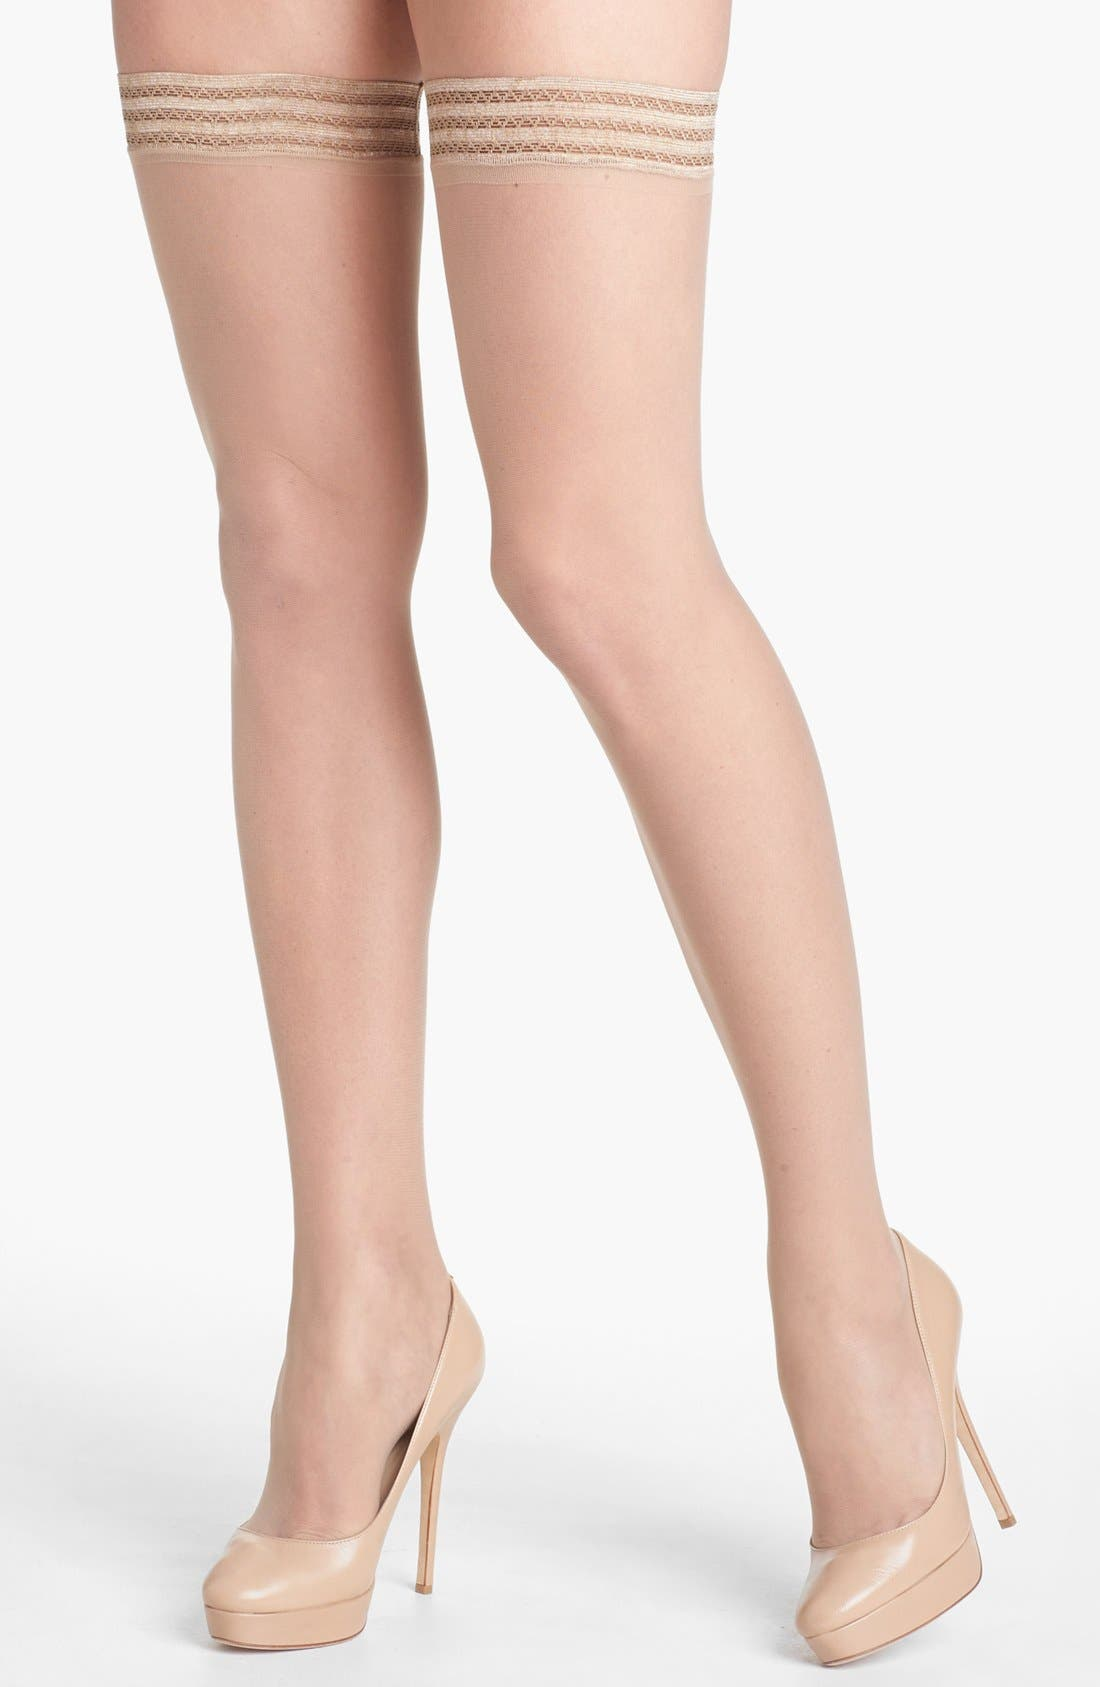 Nordstrom Sheer Thigh High Stay-Up Stockings (3 for $36)